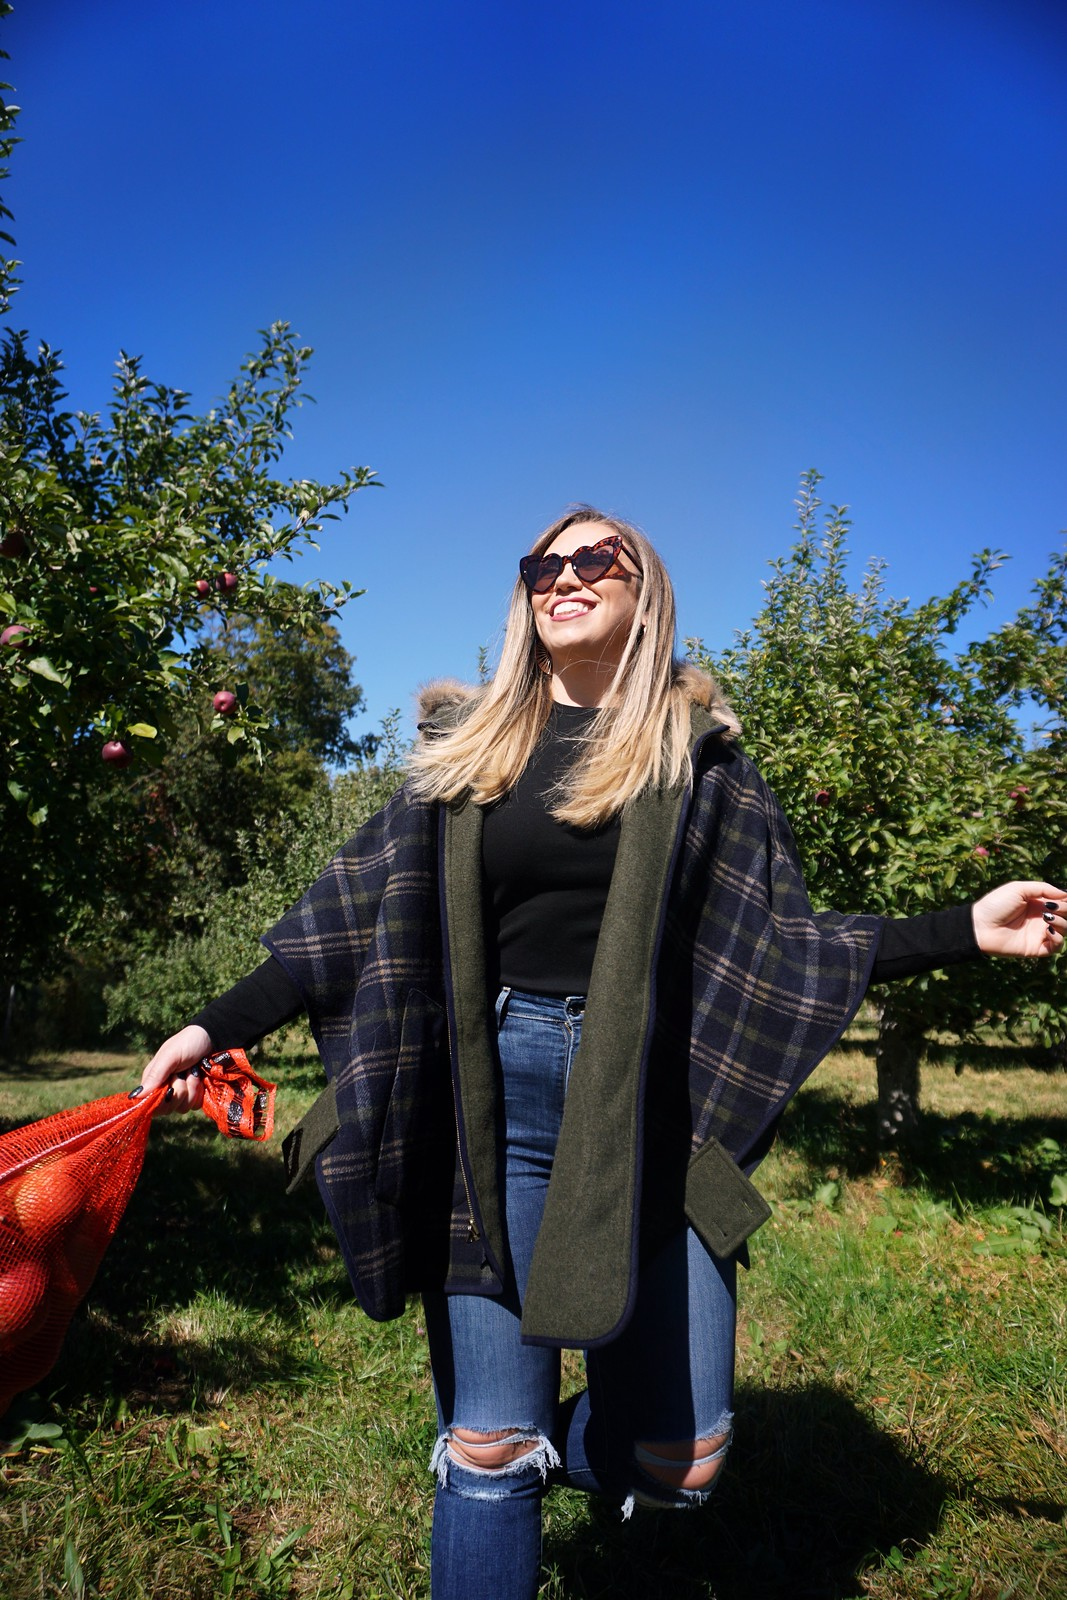 The Best Apple Orchards Close to New York City | Fishkill Farms Apple Picking | Best Places to Apple Pick Near NYC | Where to go Apple Picking near NYC | Joules USA Plaid Reversible Cape Coat